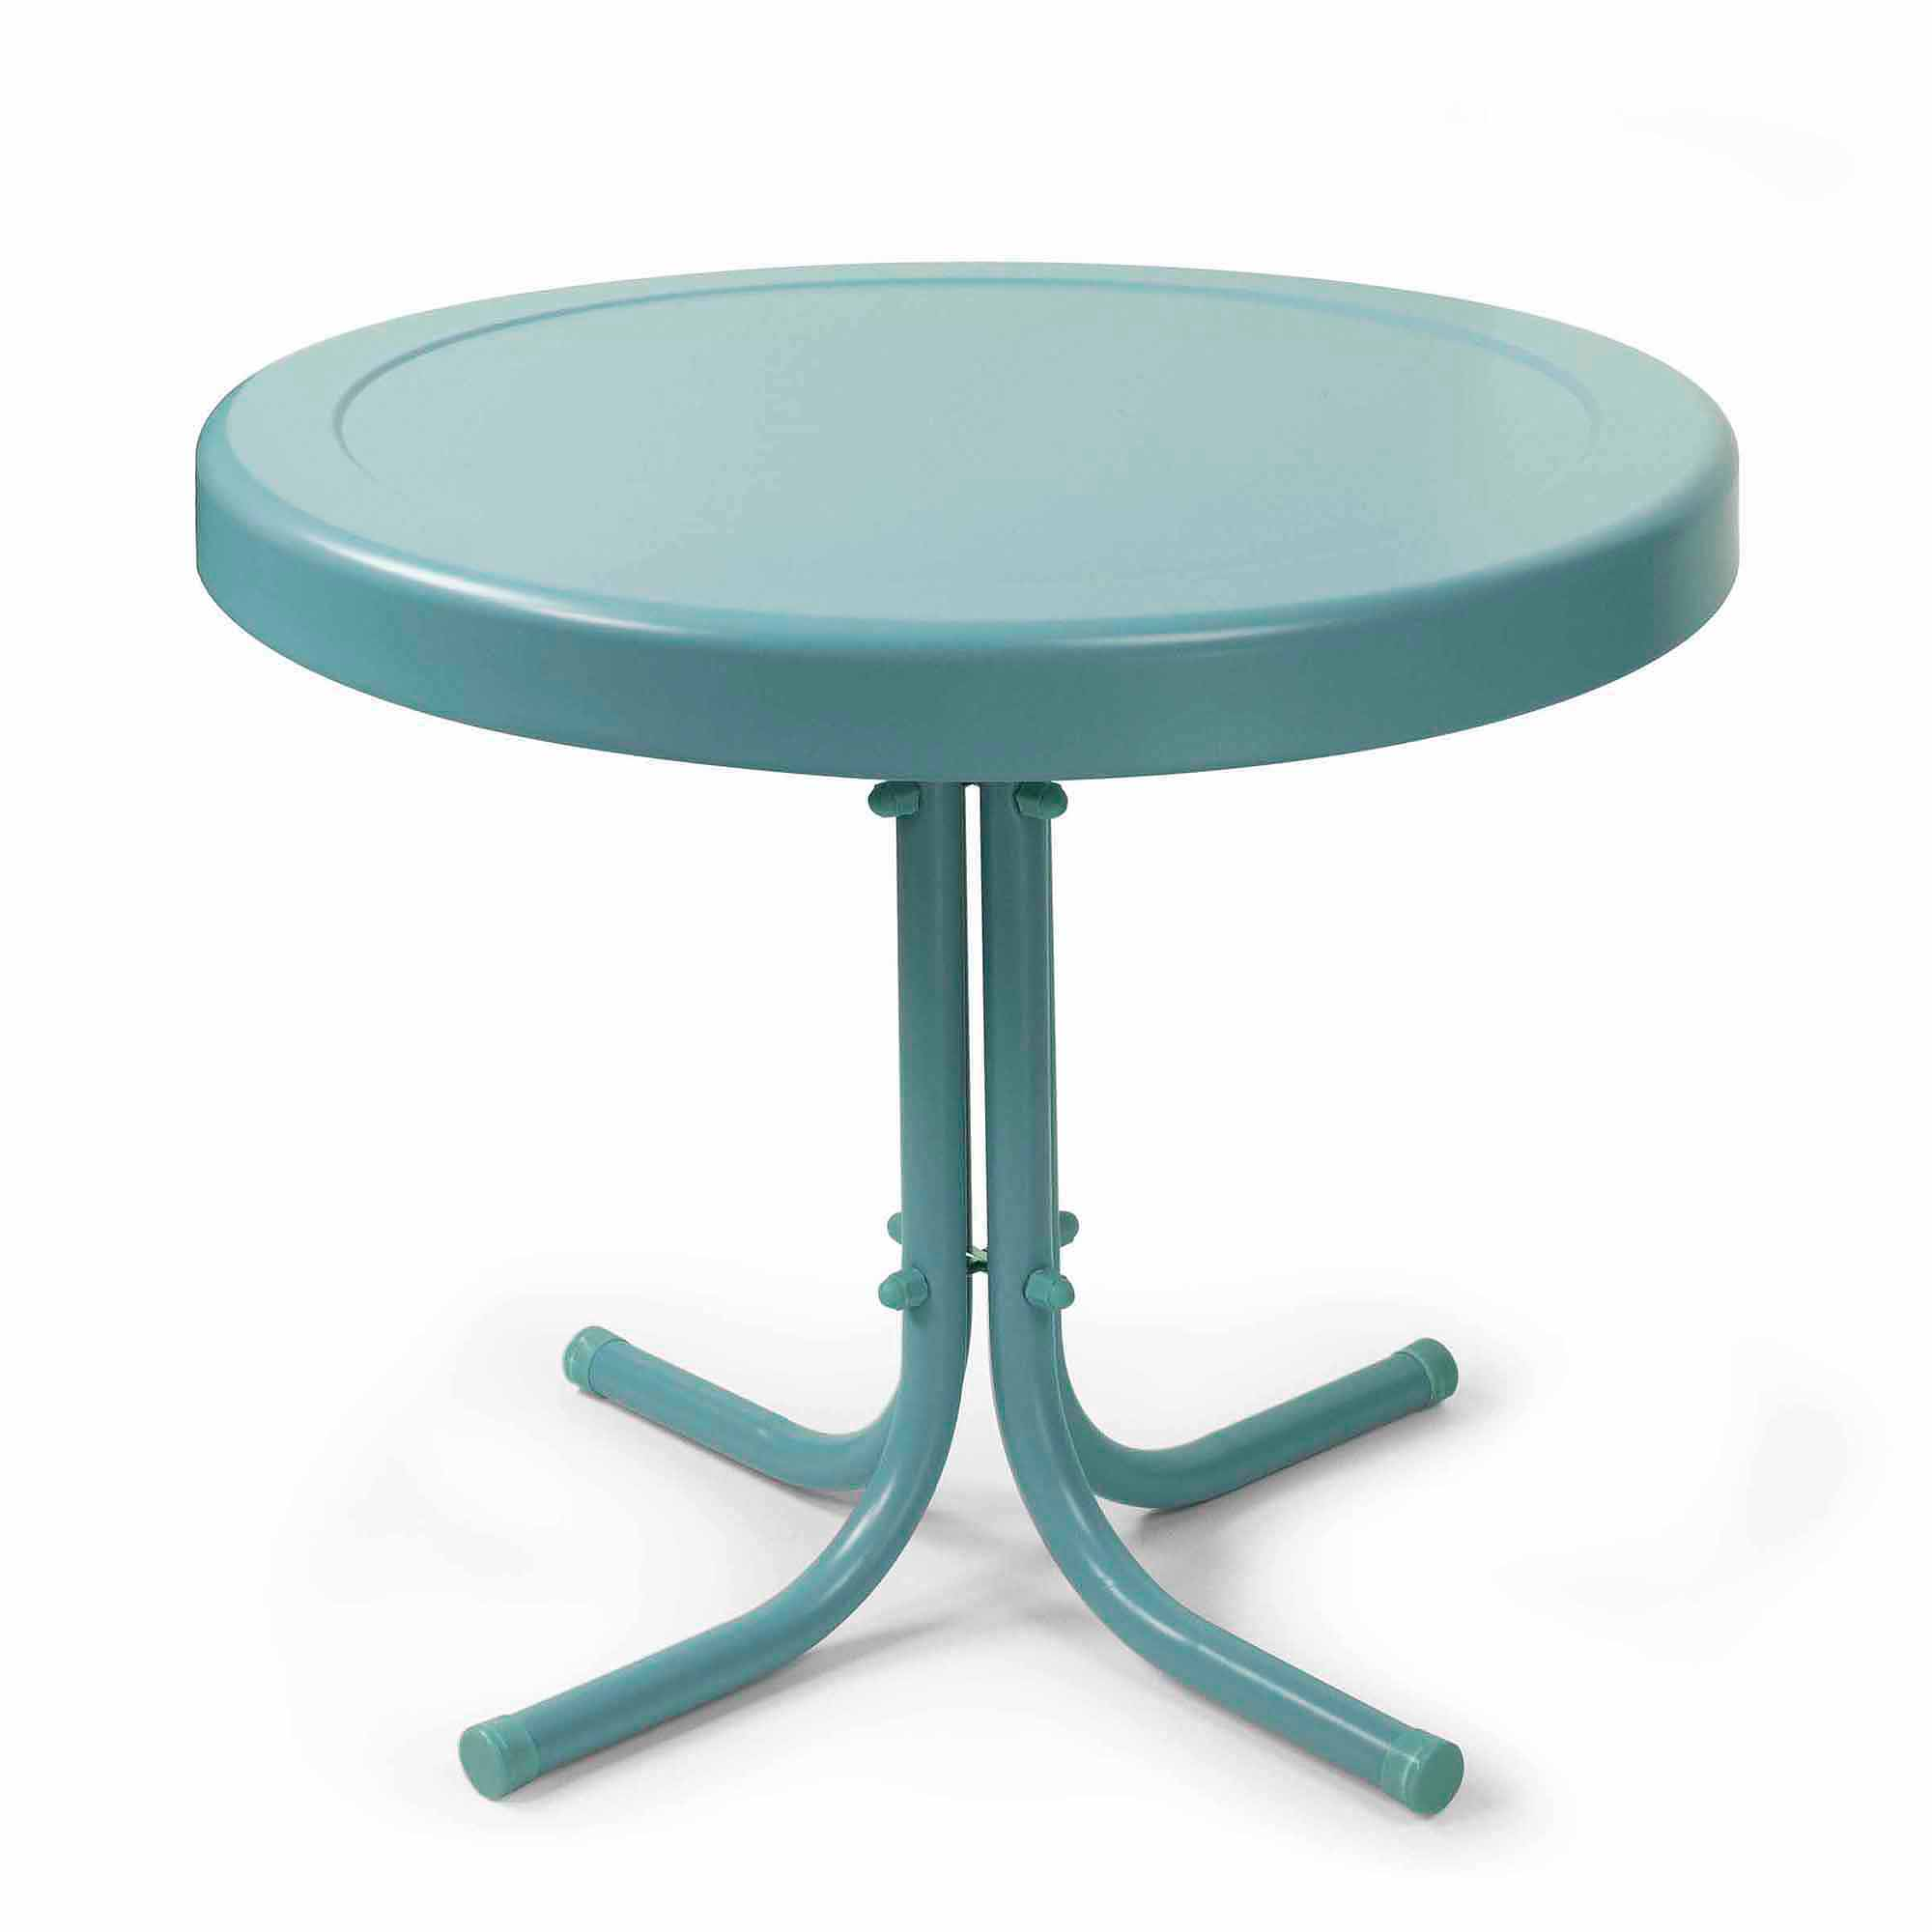 better homes and gardens colebrook outdoor glass top side table small blue accent round oak mini bedside lamp market umbrella dale tiffany desk west elm floating shelves console